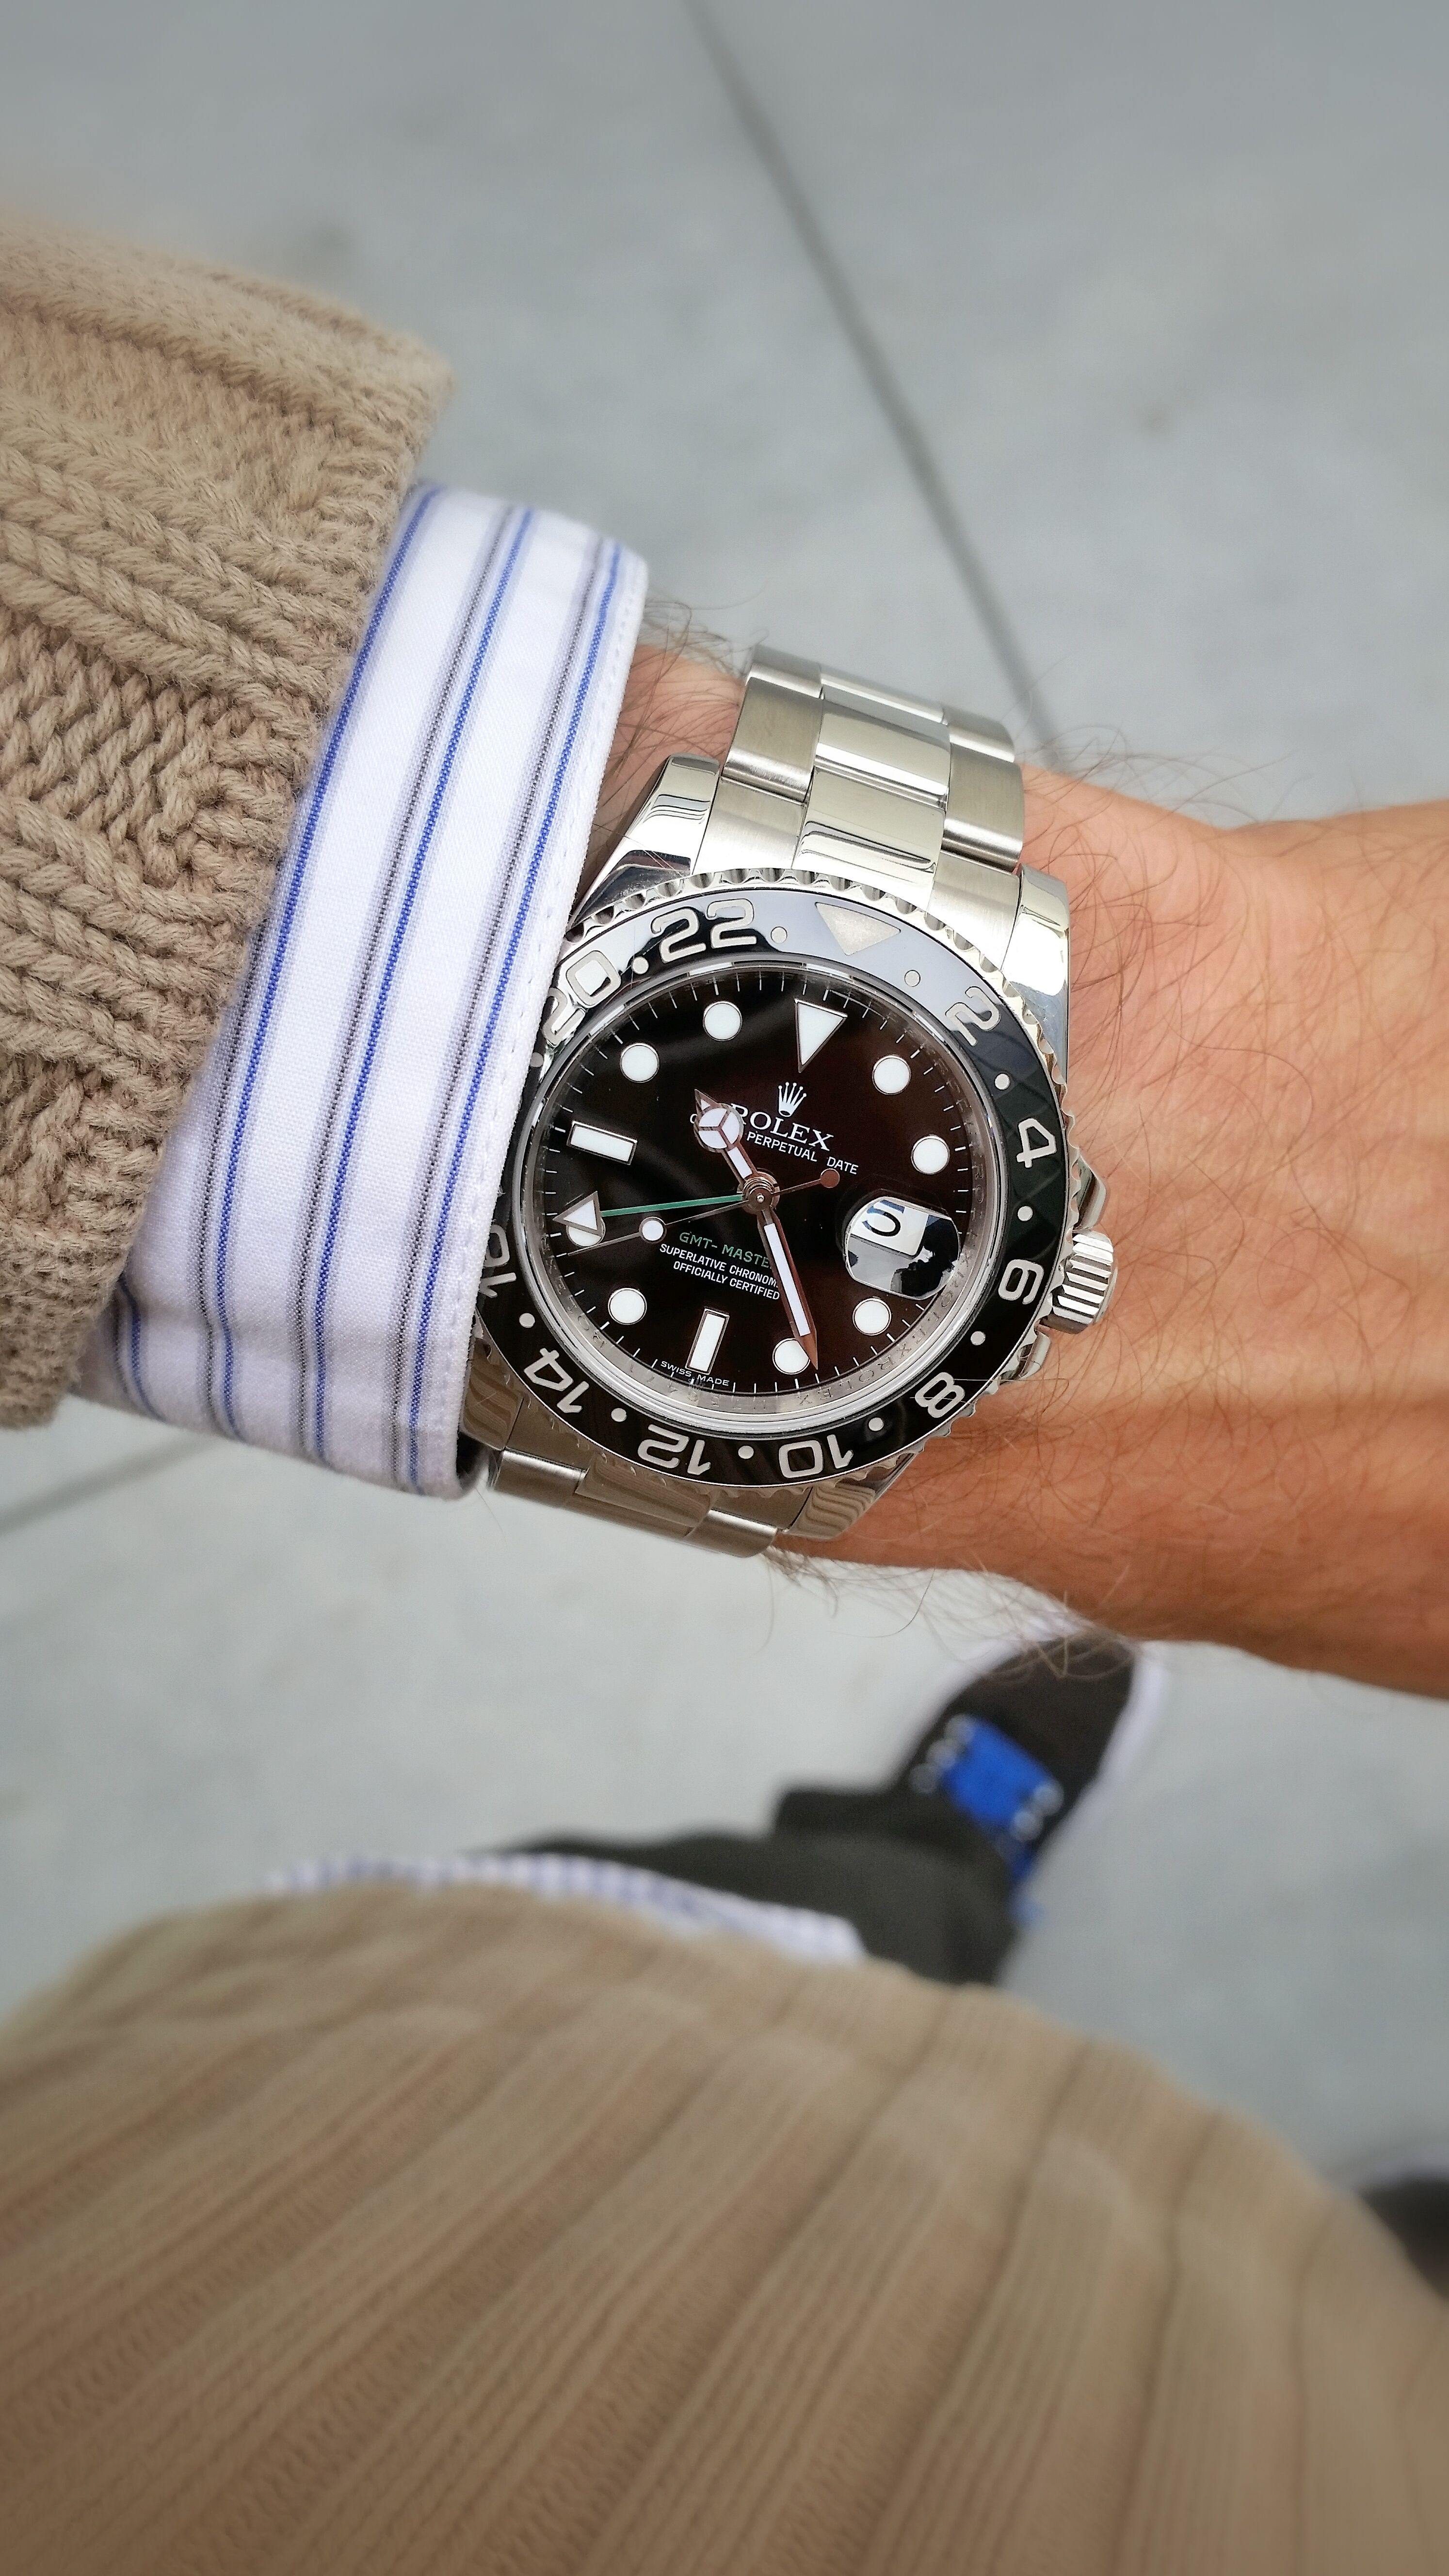 Rolex Gmt Master Ii Black Ceramic Bezel Black Dial Stainless Steel Band Polished A E Watches Rolex Watches Rolex Rolex Prices